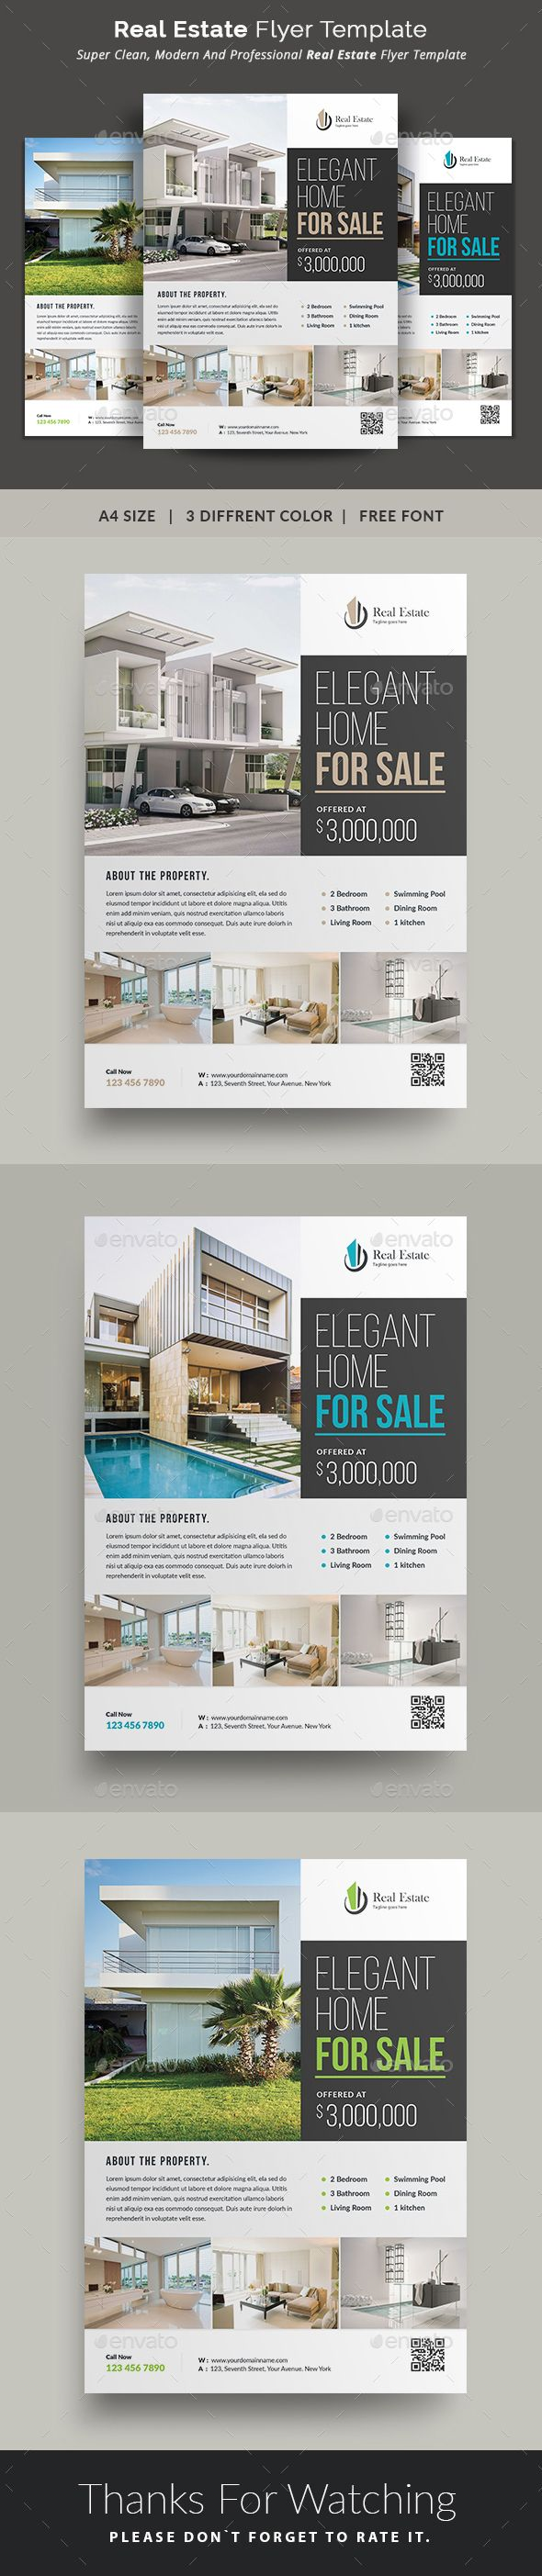 Real Estate Template%0A Real Estate  Flyer  Commerce Flyers  This Real Estate Flyer Template is a  great tool for promoting your real estate business also useful for a realtor  or